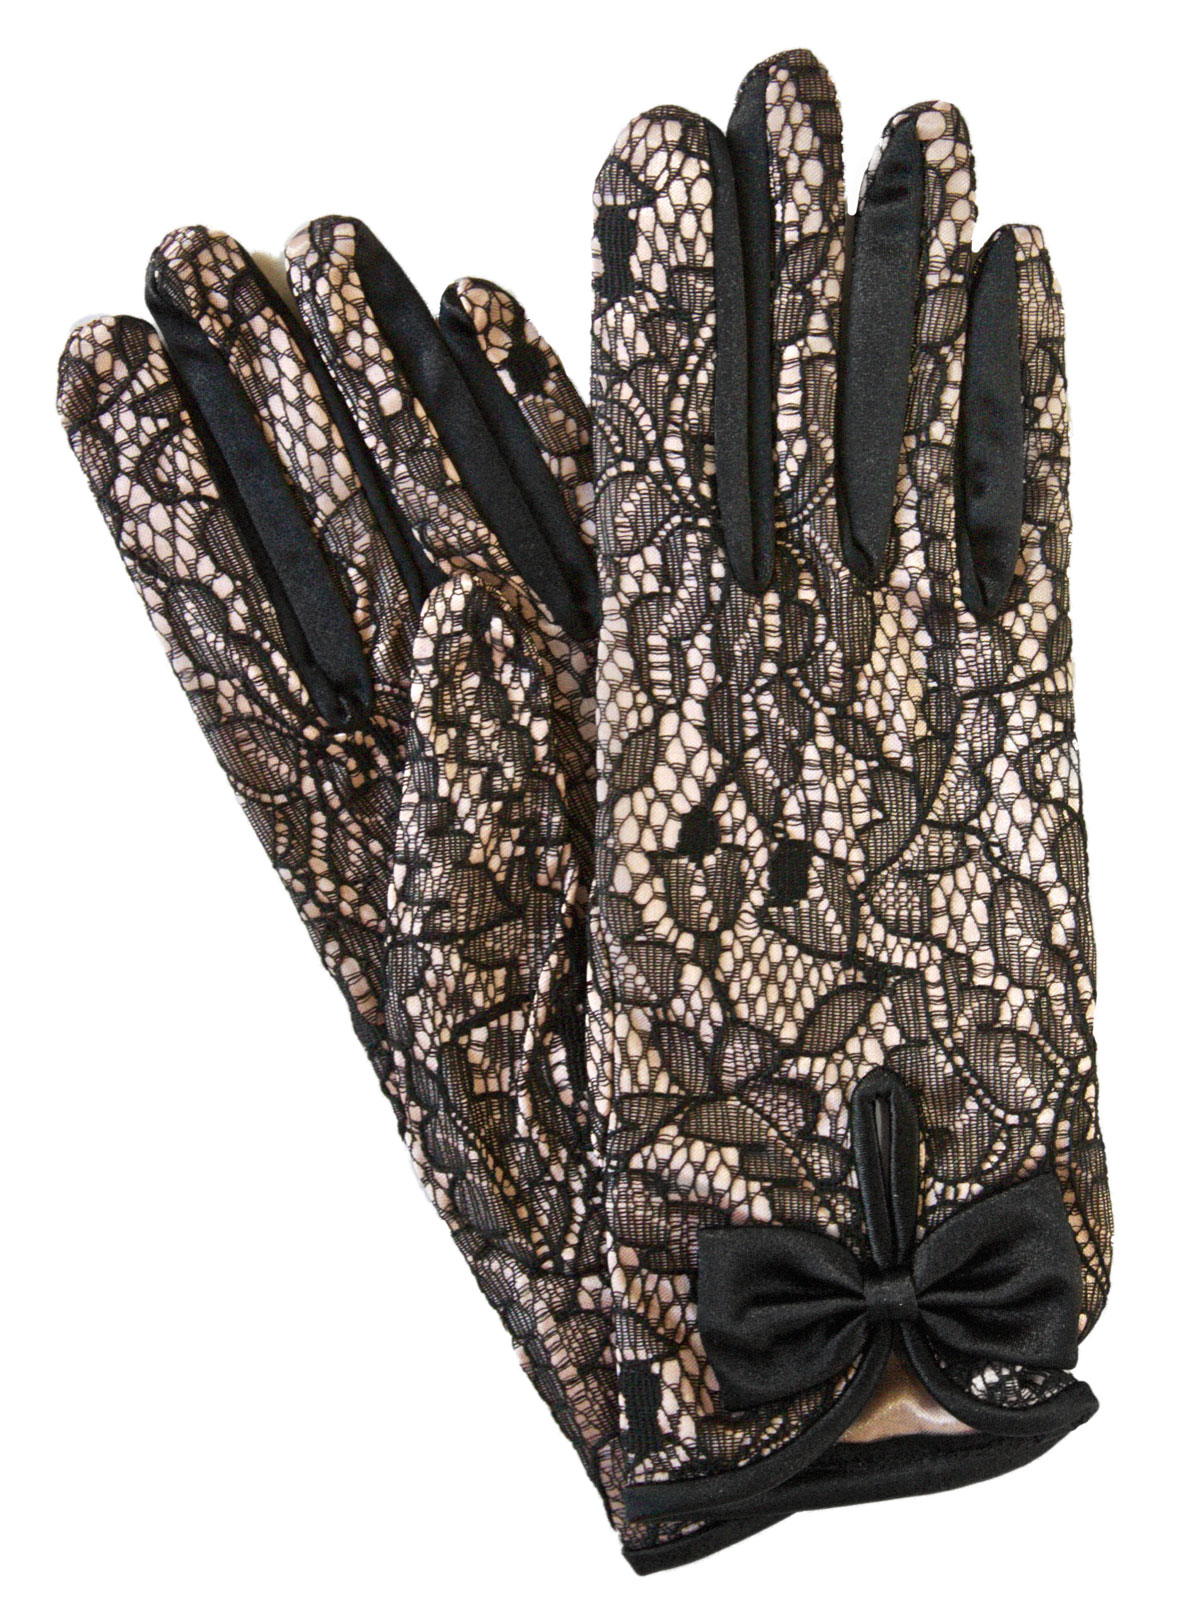 Dents Satin And Lace Dress Gloves Bow Cuff Tout Ensemble